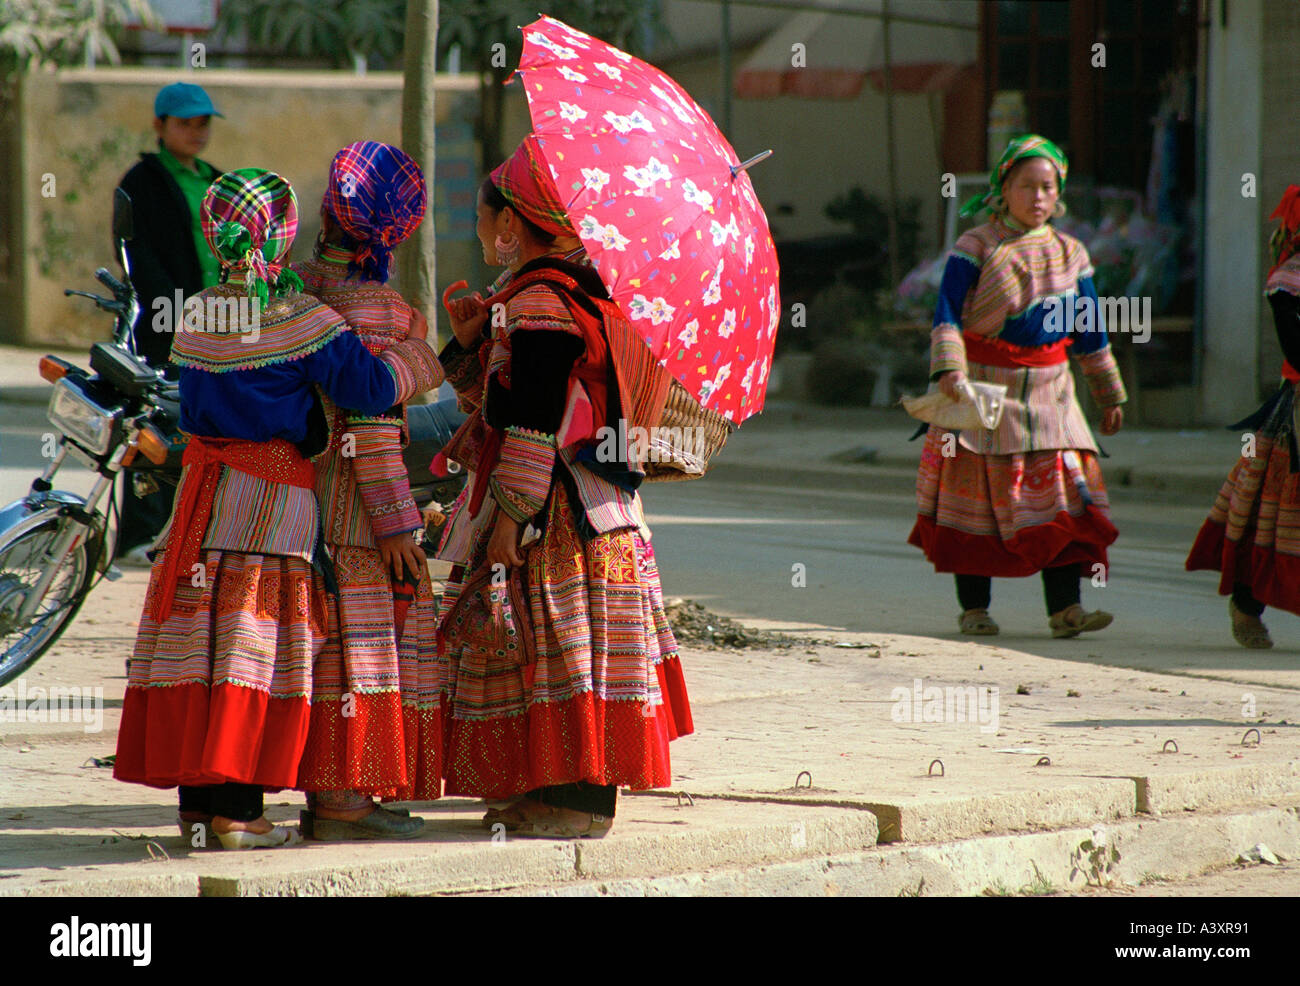 Women of the Hmong Tribe in traditional dress at the market in BacHa Northern Vietnam - Stock Image